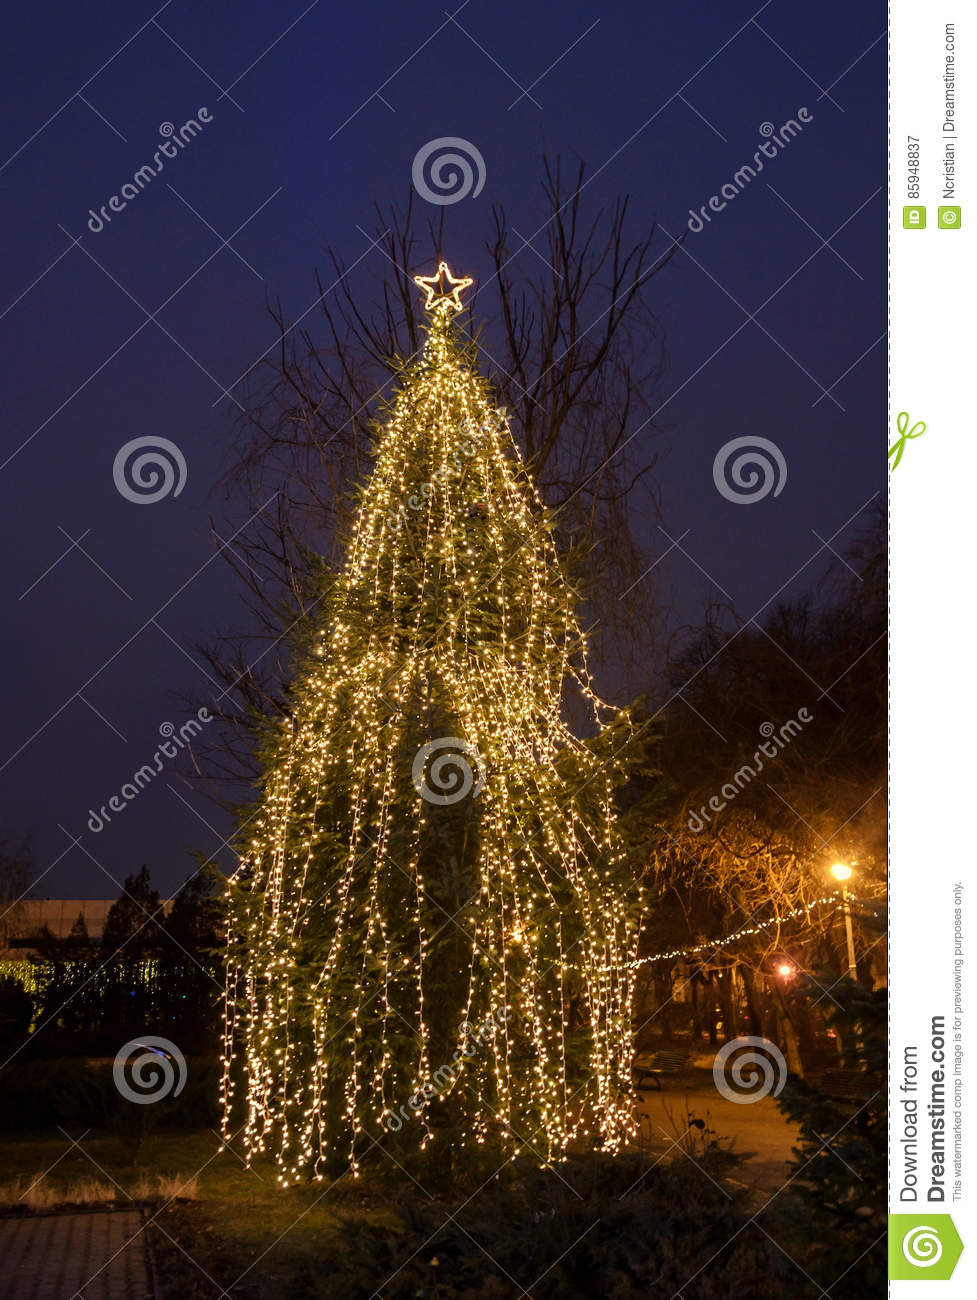 Colored Lighted Christmas Tree With Ornaments Outdoor Night Time